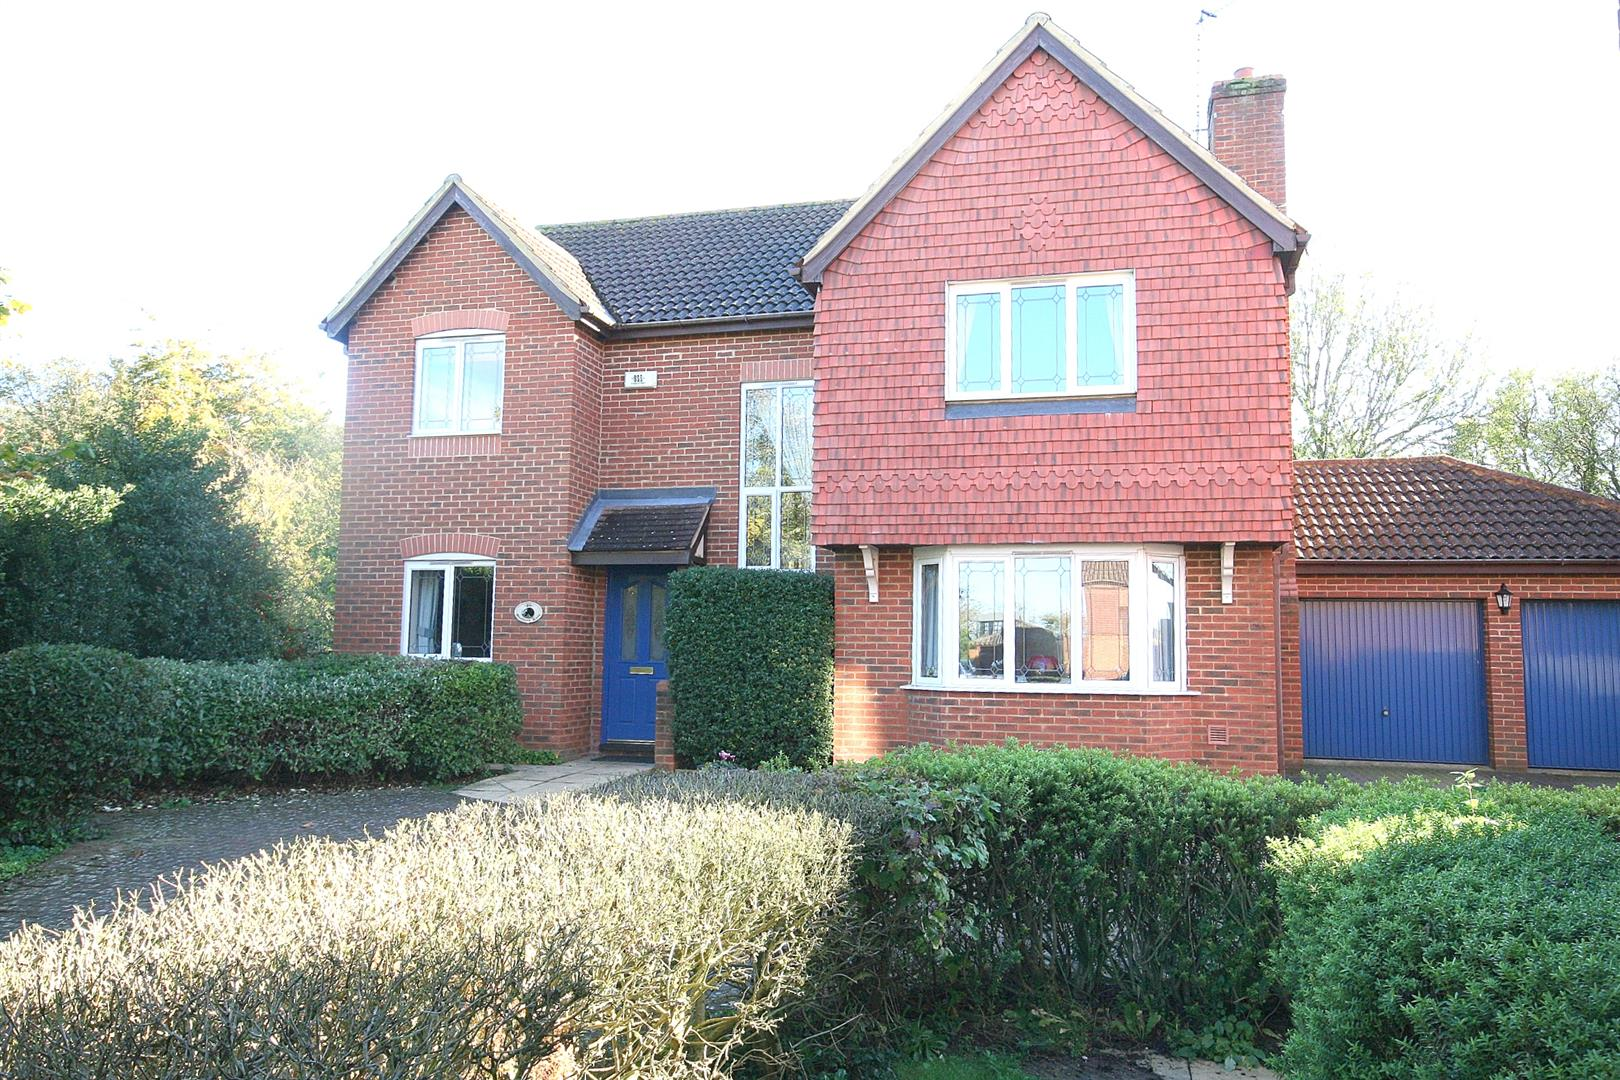 4 Bedrooms Detached House for sale in Badgers Gate, Dunstable, Beds.